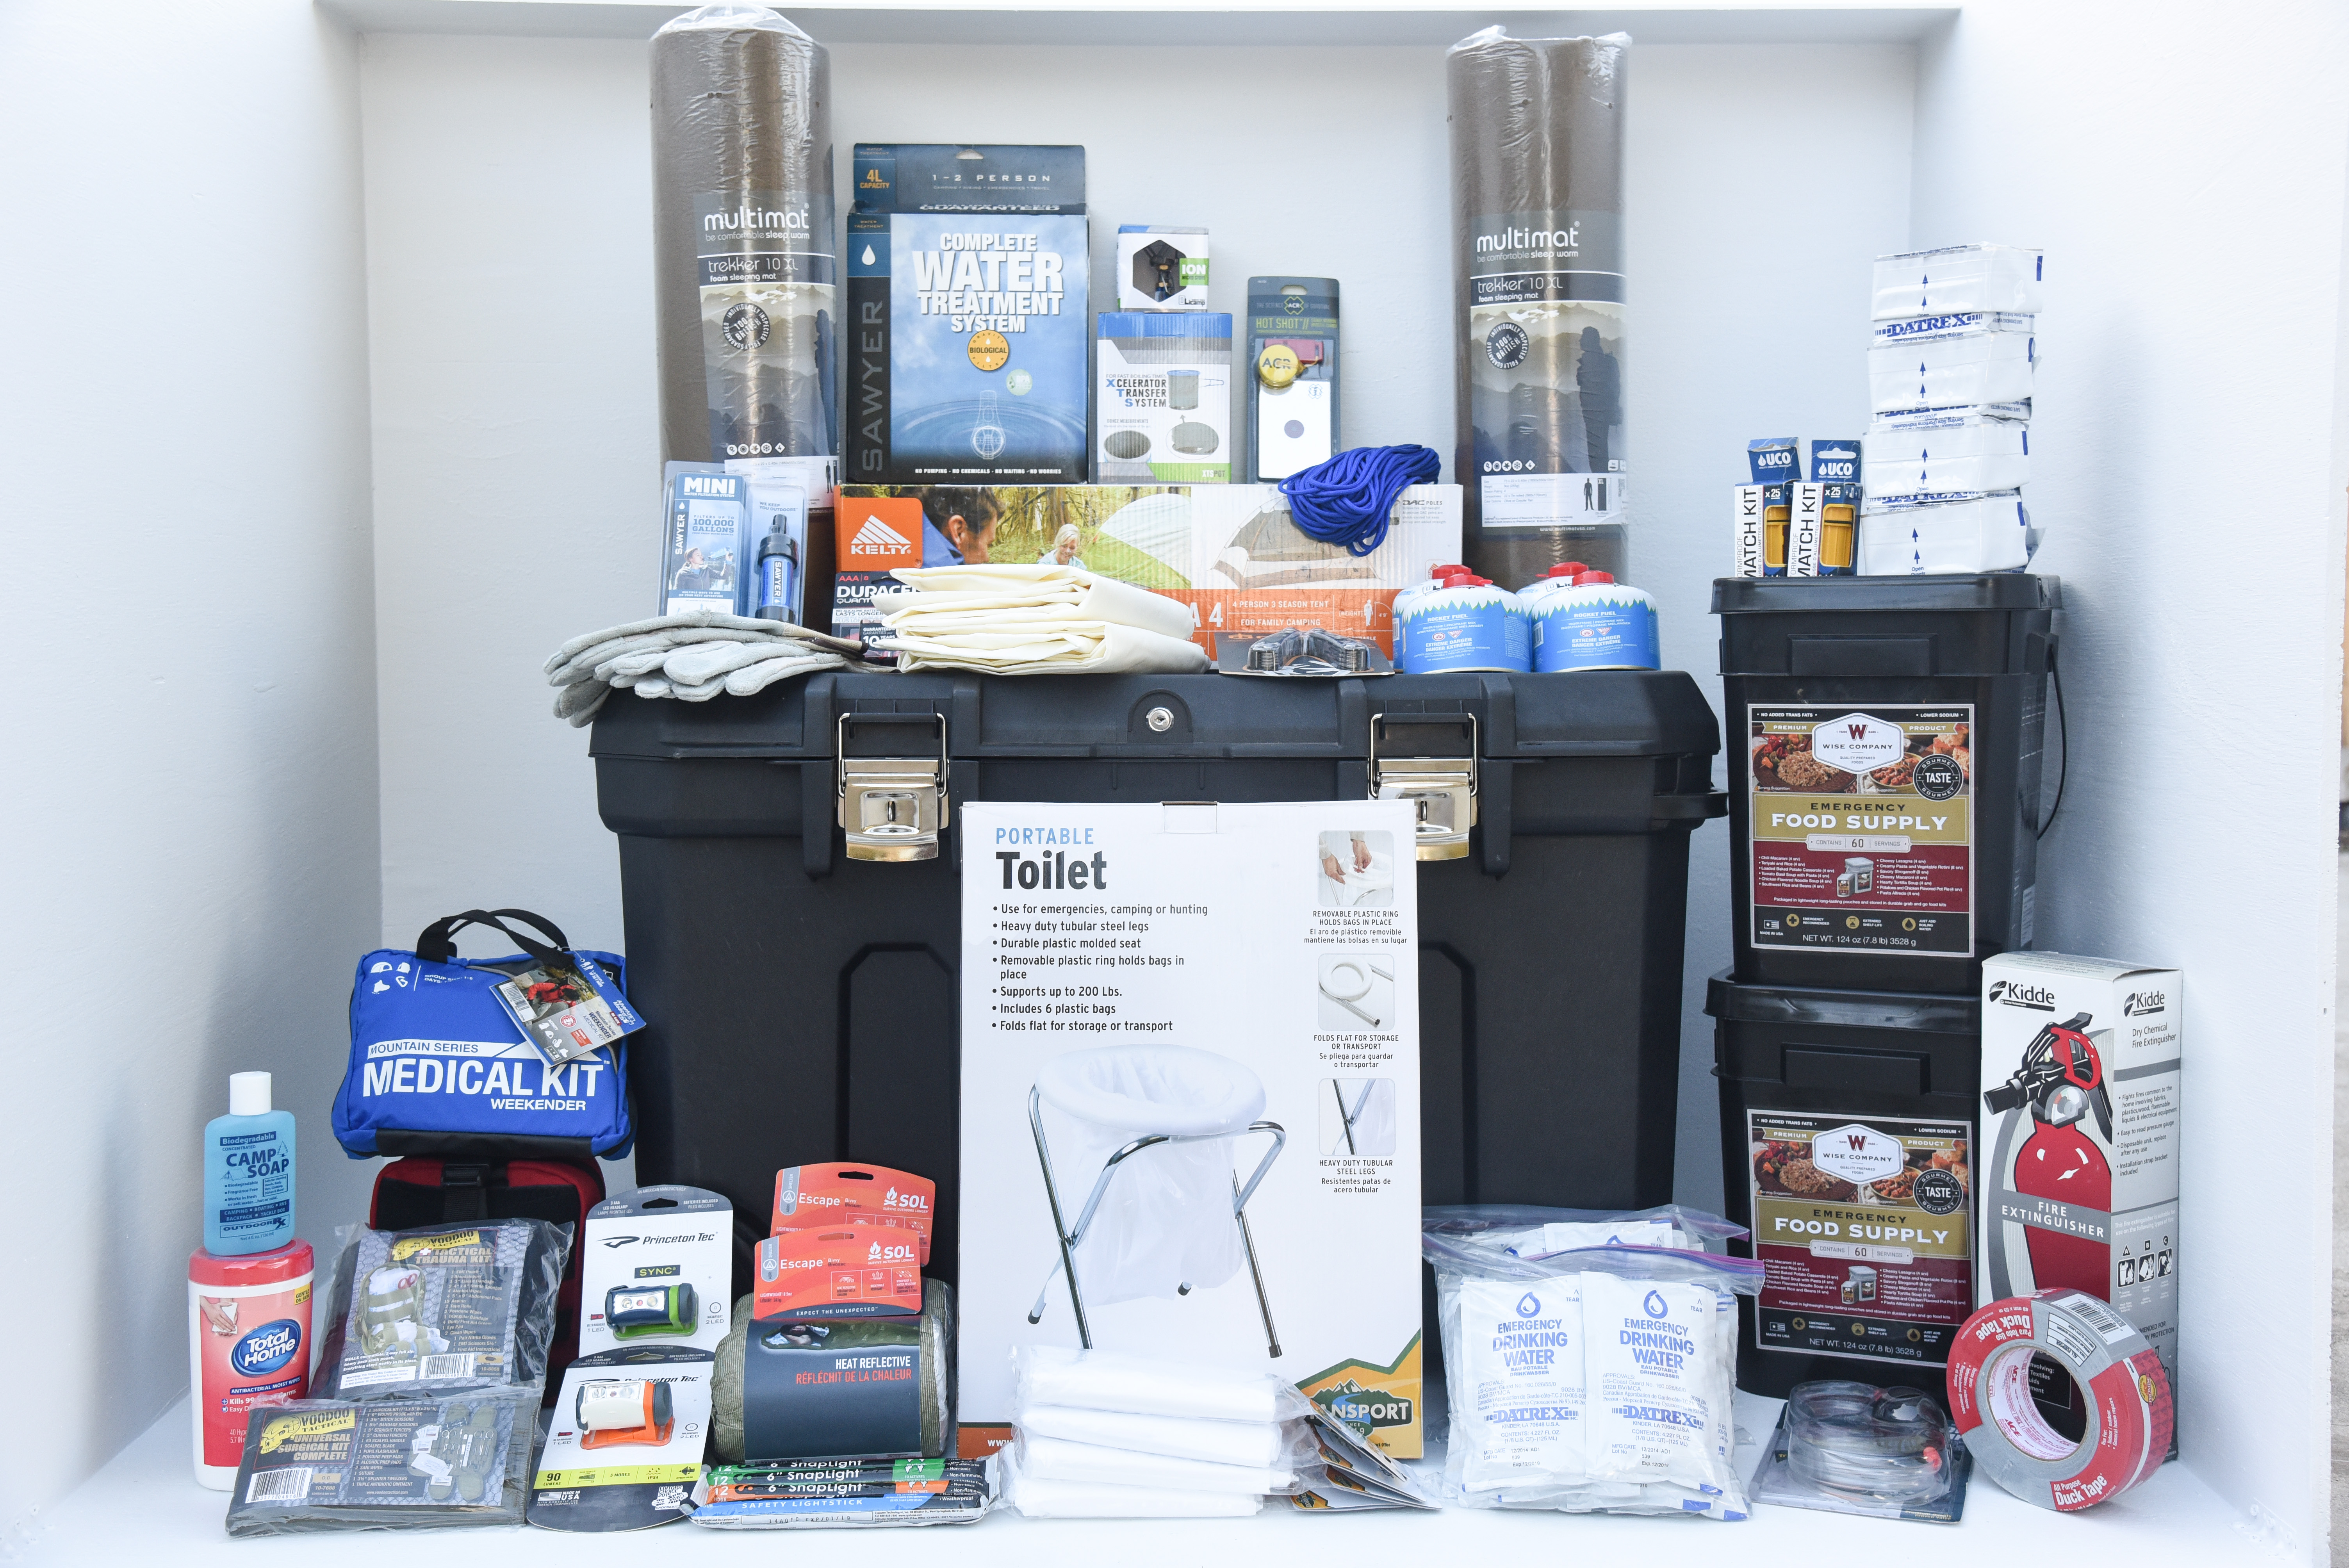 Deluxe Family Home Emergency Kit 2 Persons The Perfect